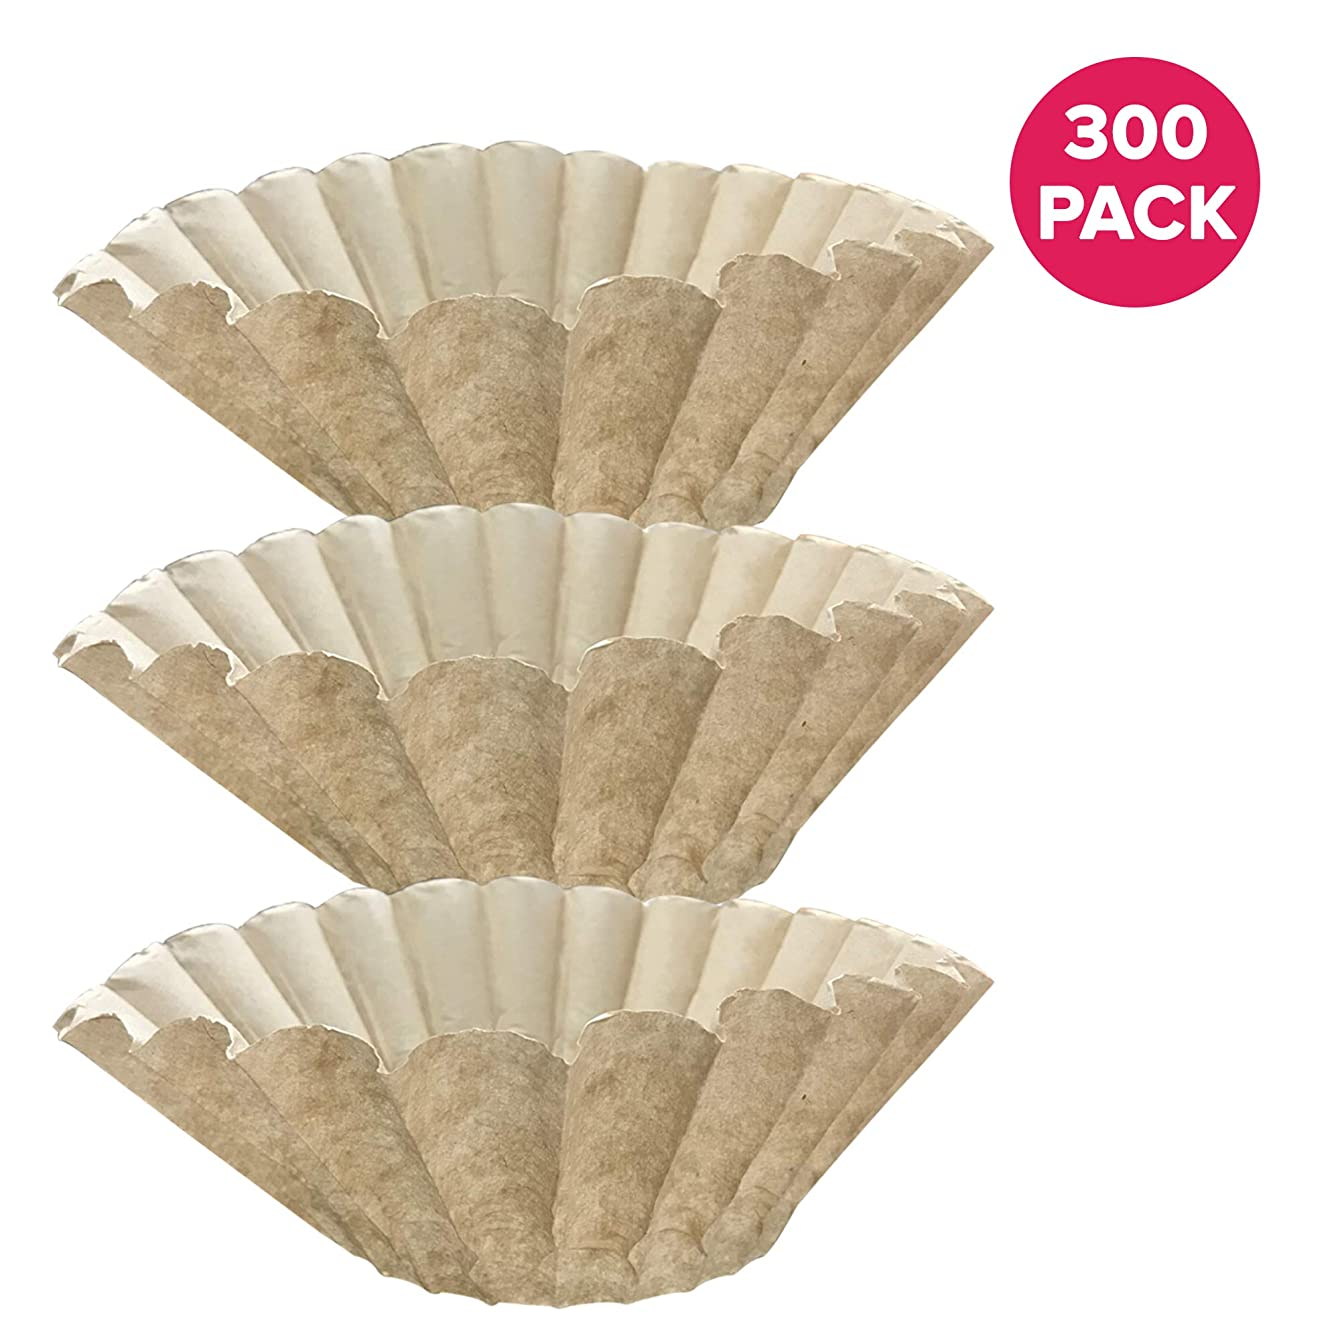 Think Crucial 300PK Replacements for Bunn Unbleached Paper Coffee Filter Fits 12 Cup Commercial Coffee Brewers, Compatible with Part # 1M5002 & 20115.0000